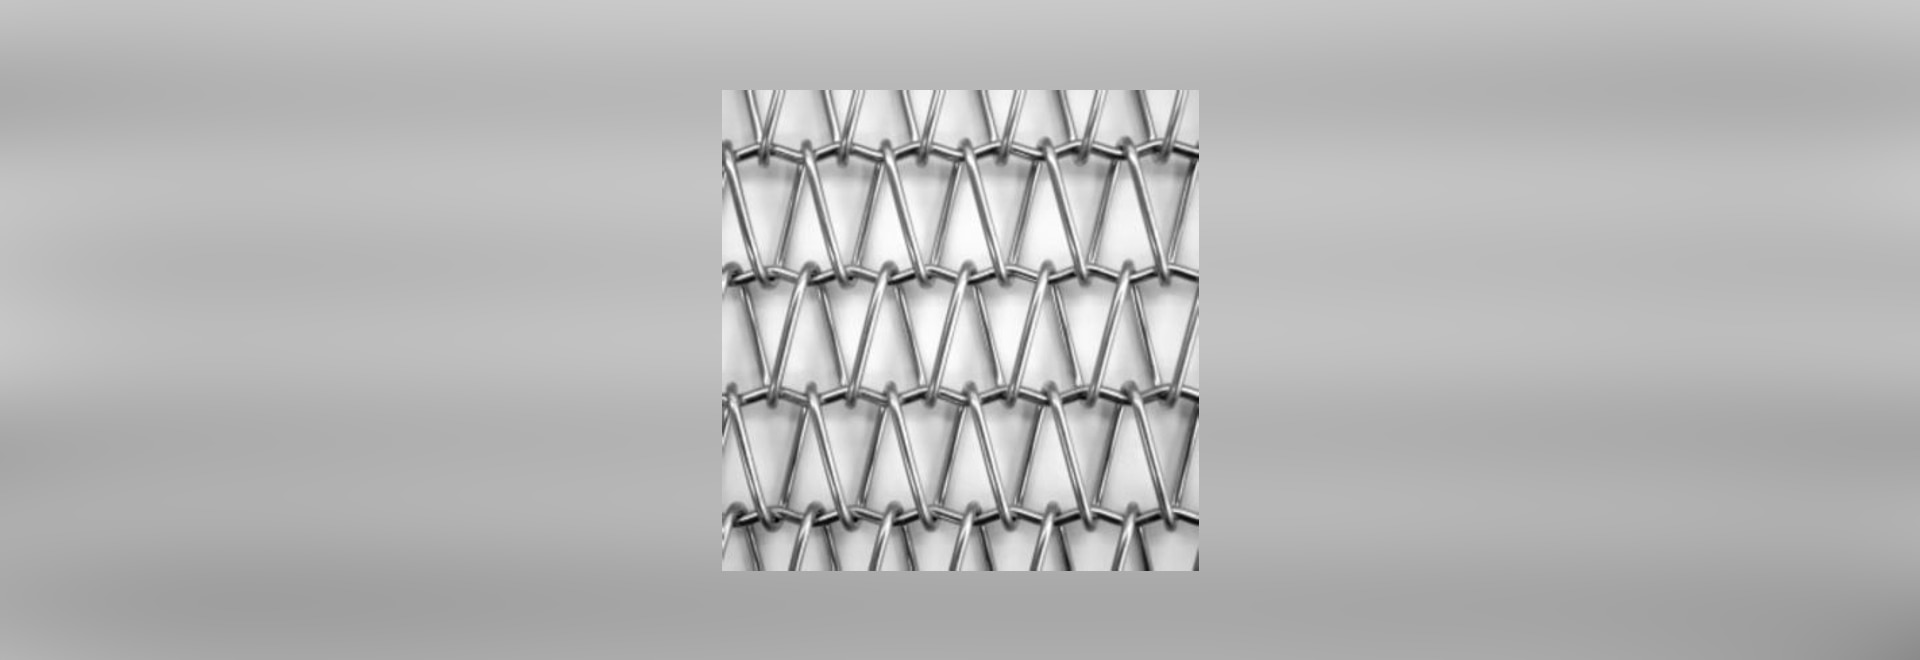 NEW: ceilings and partition wall woven wire fabric by Costacurta S.p.A.-VICO